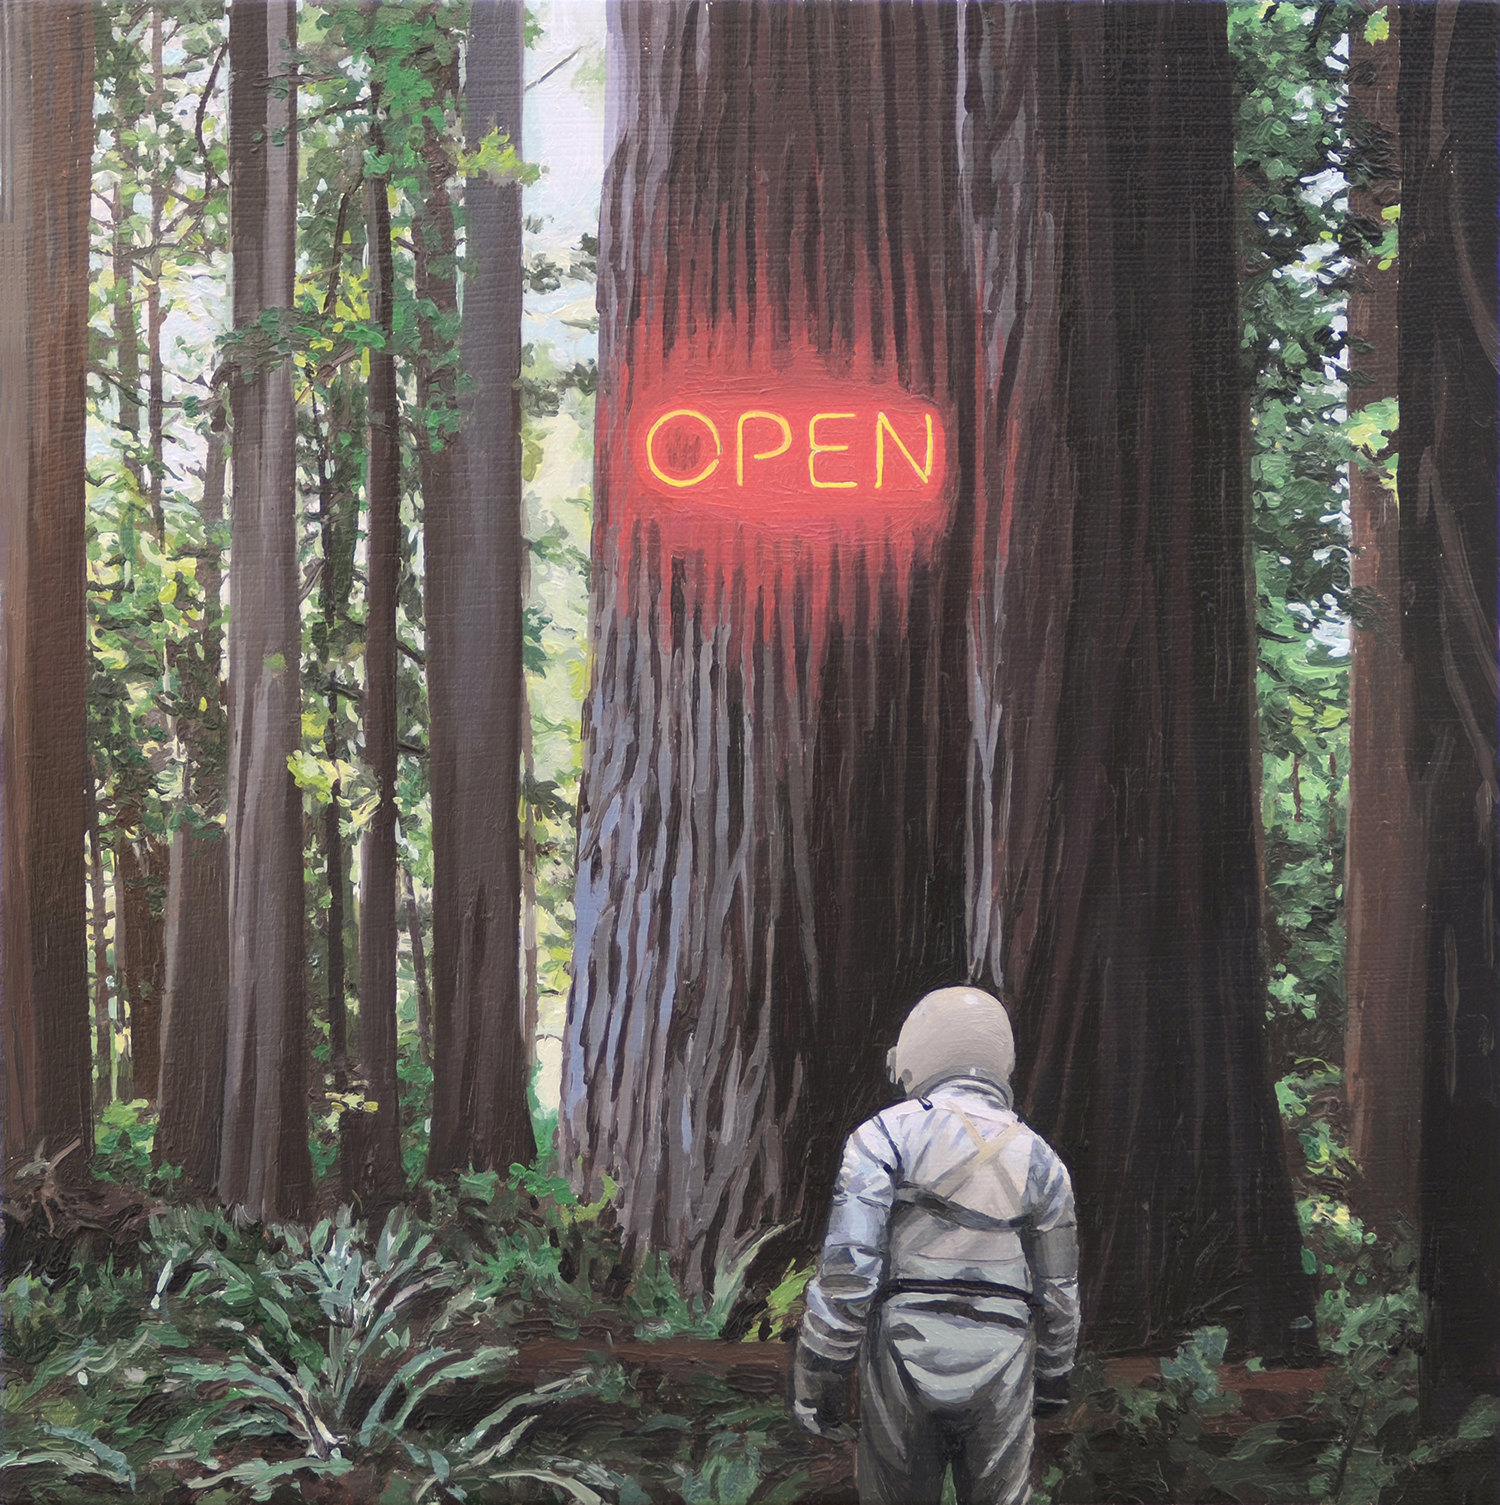 in the forest, open illuminated sign on tree, astronaut